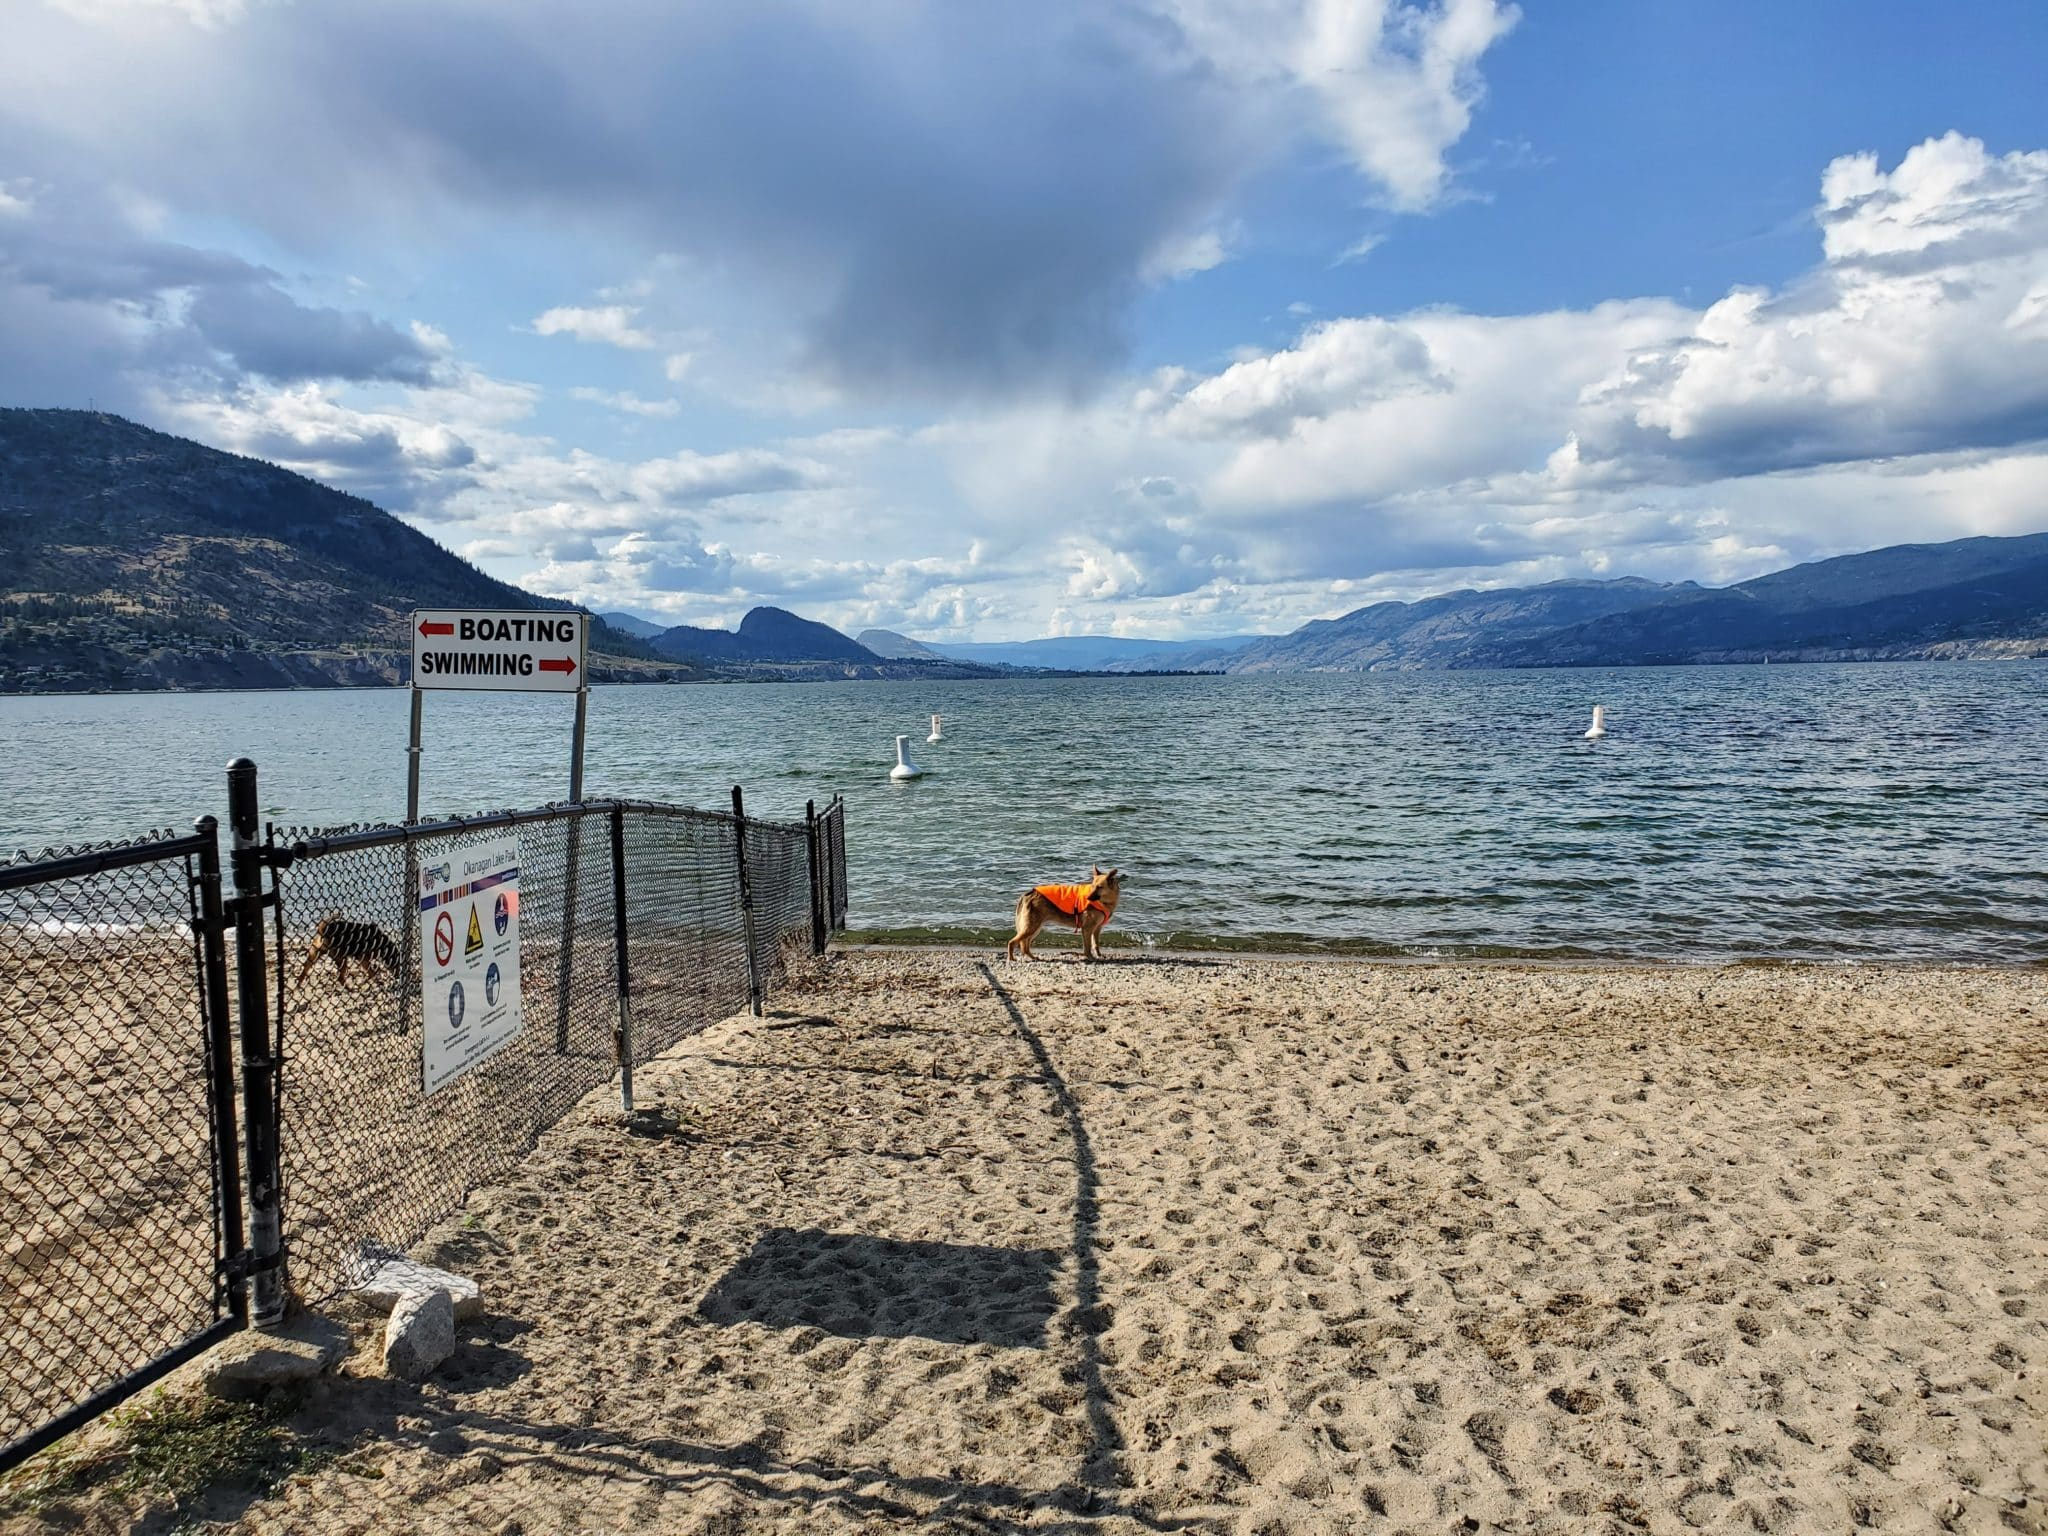 Okanagan Lake Off-Leash Dog Park, Penticton, BC